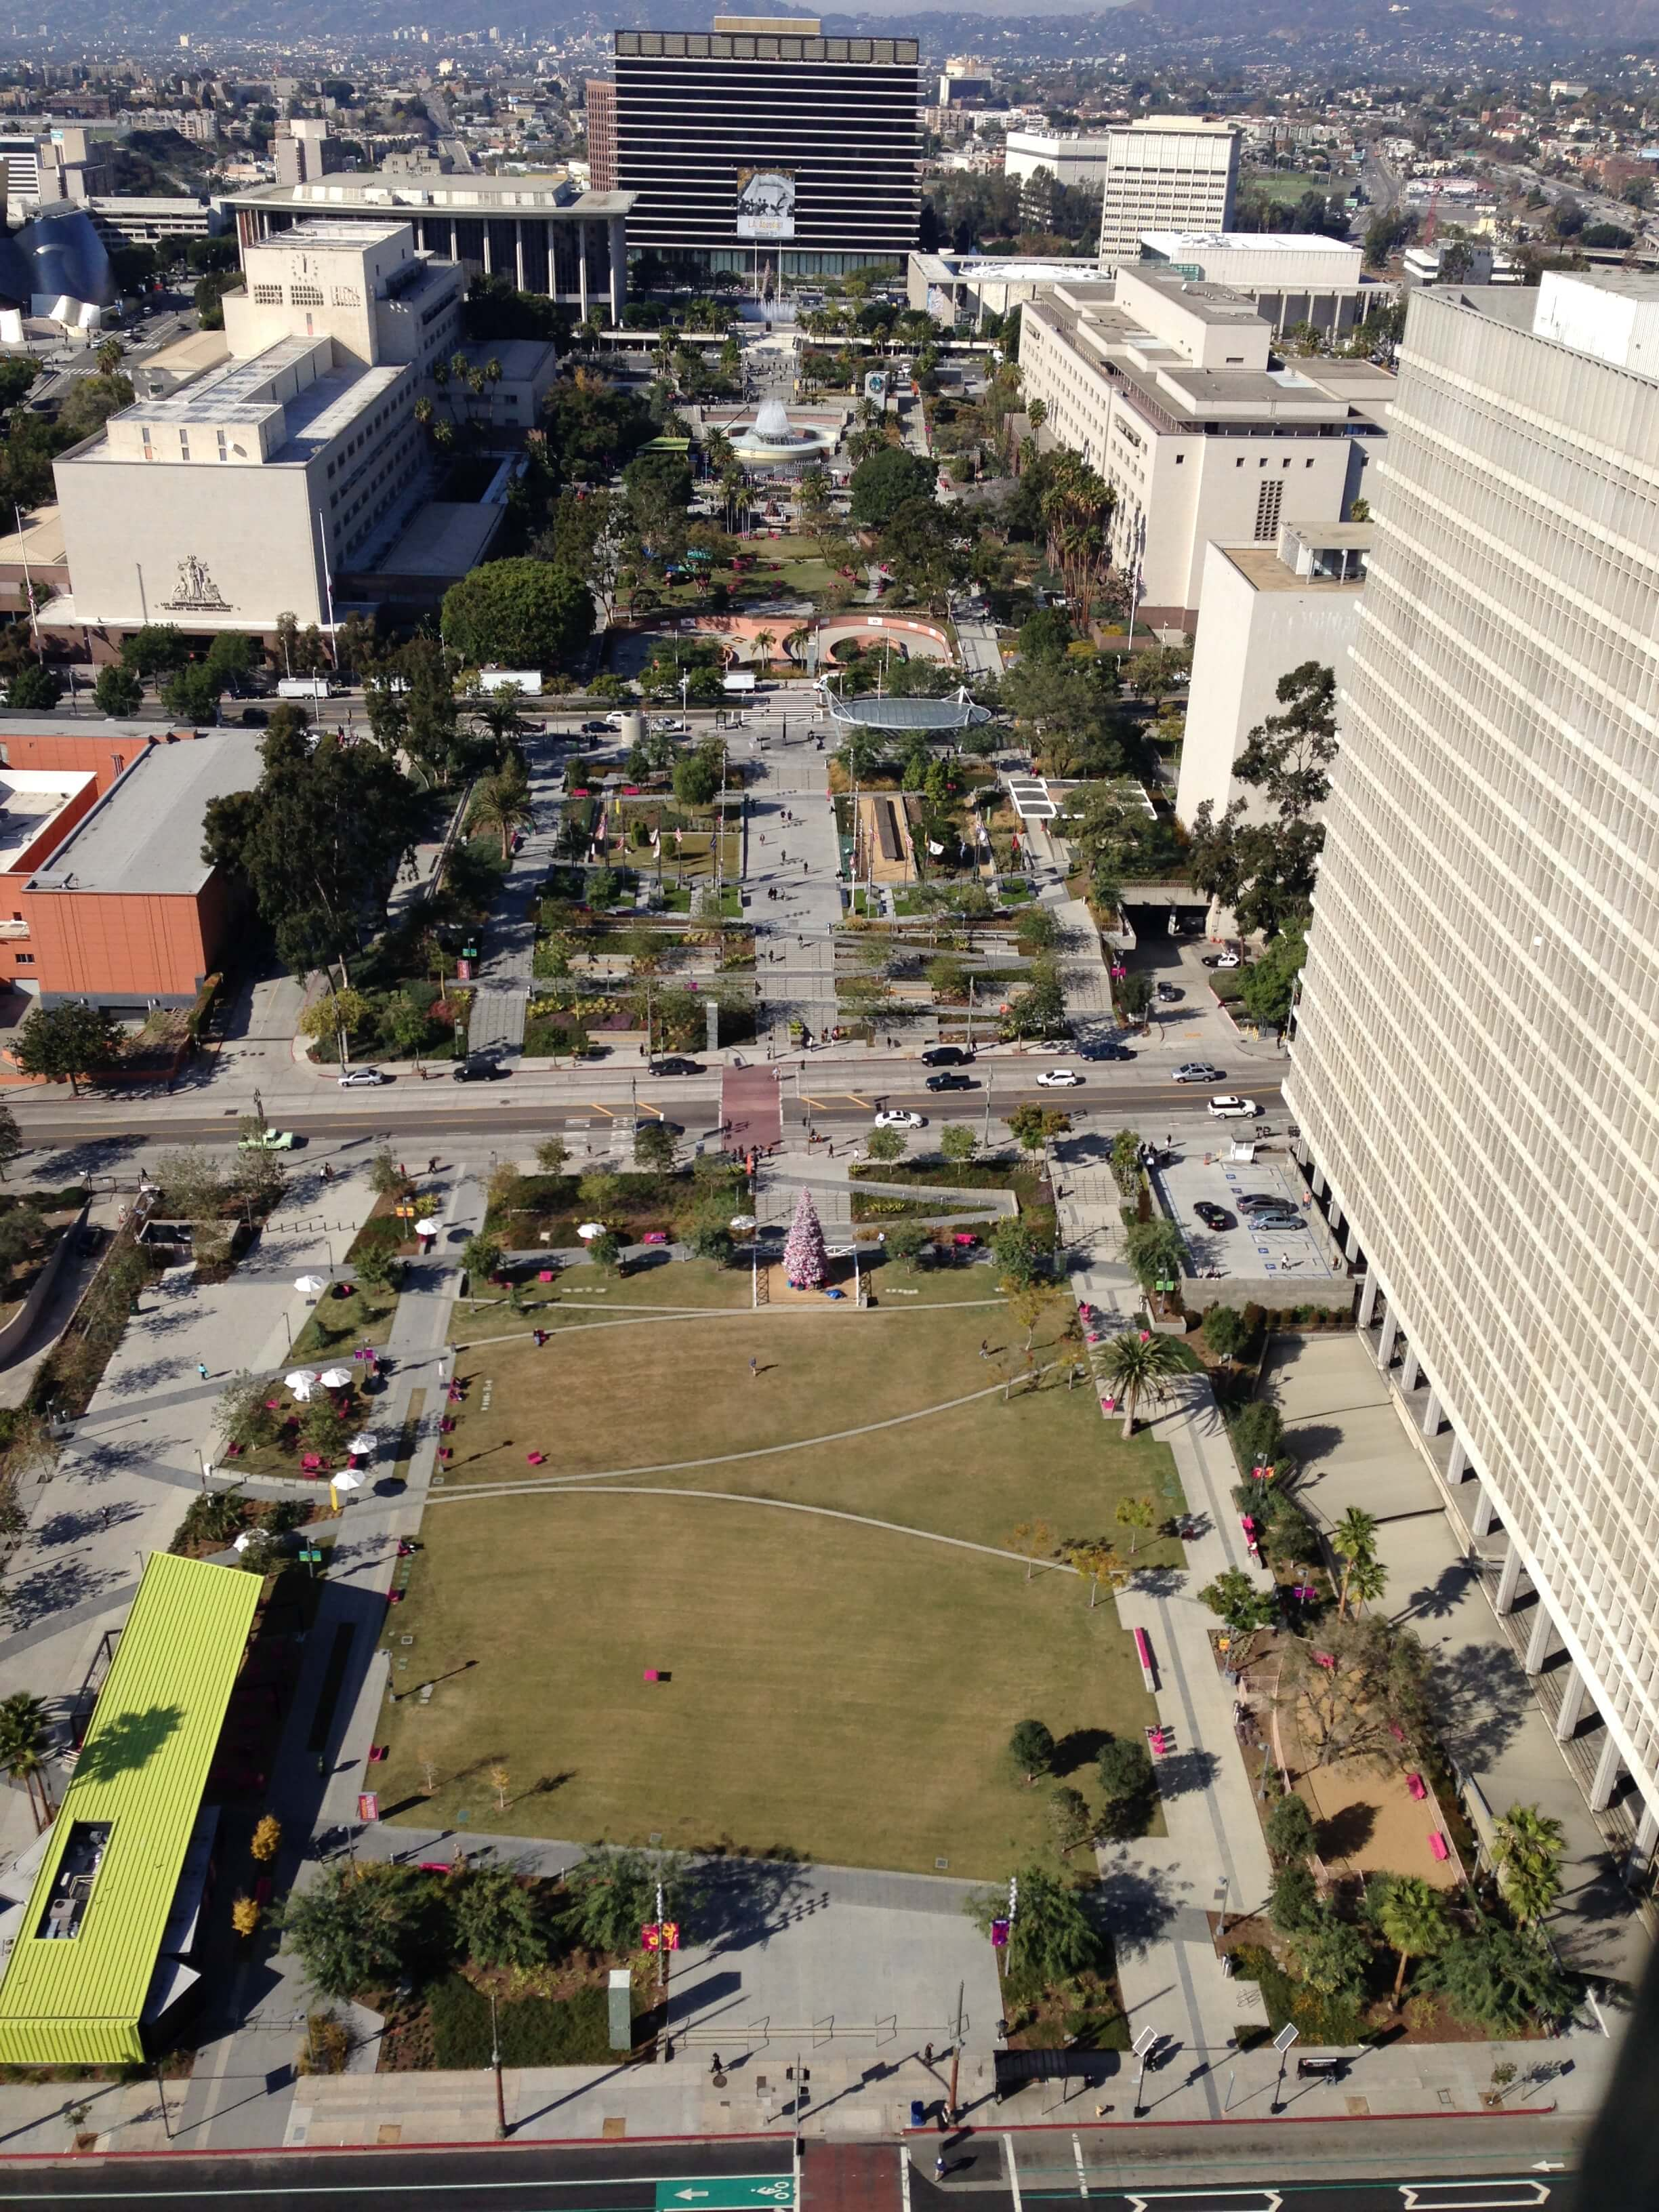 View of Grand Park from the City Hall Observation Deck